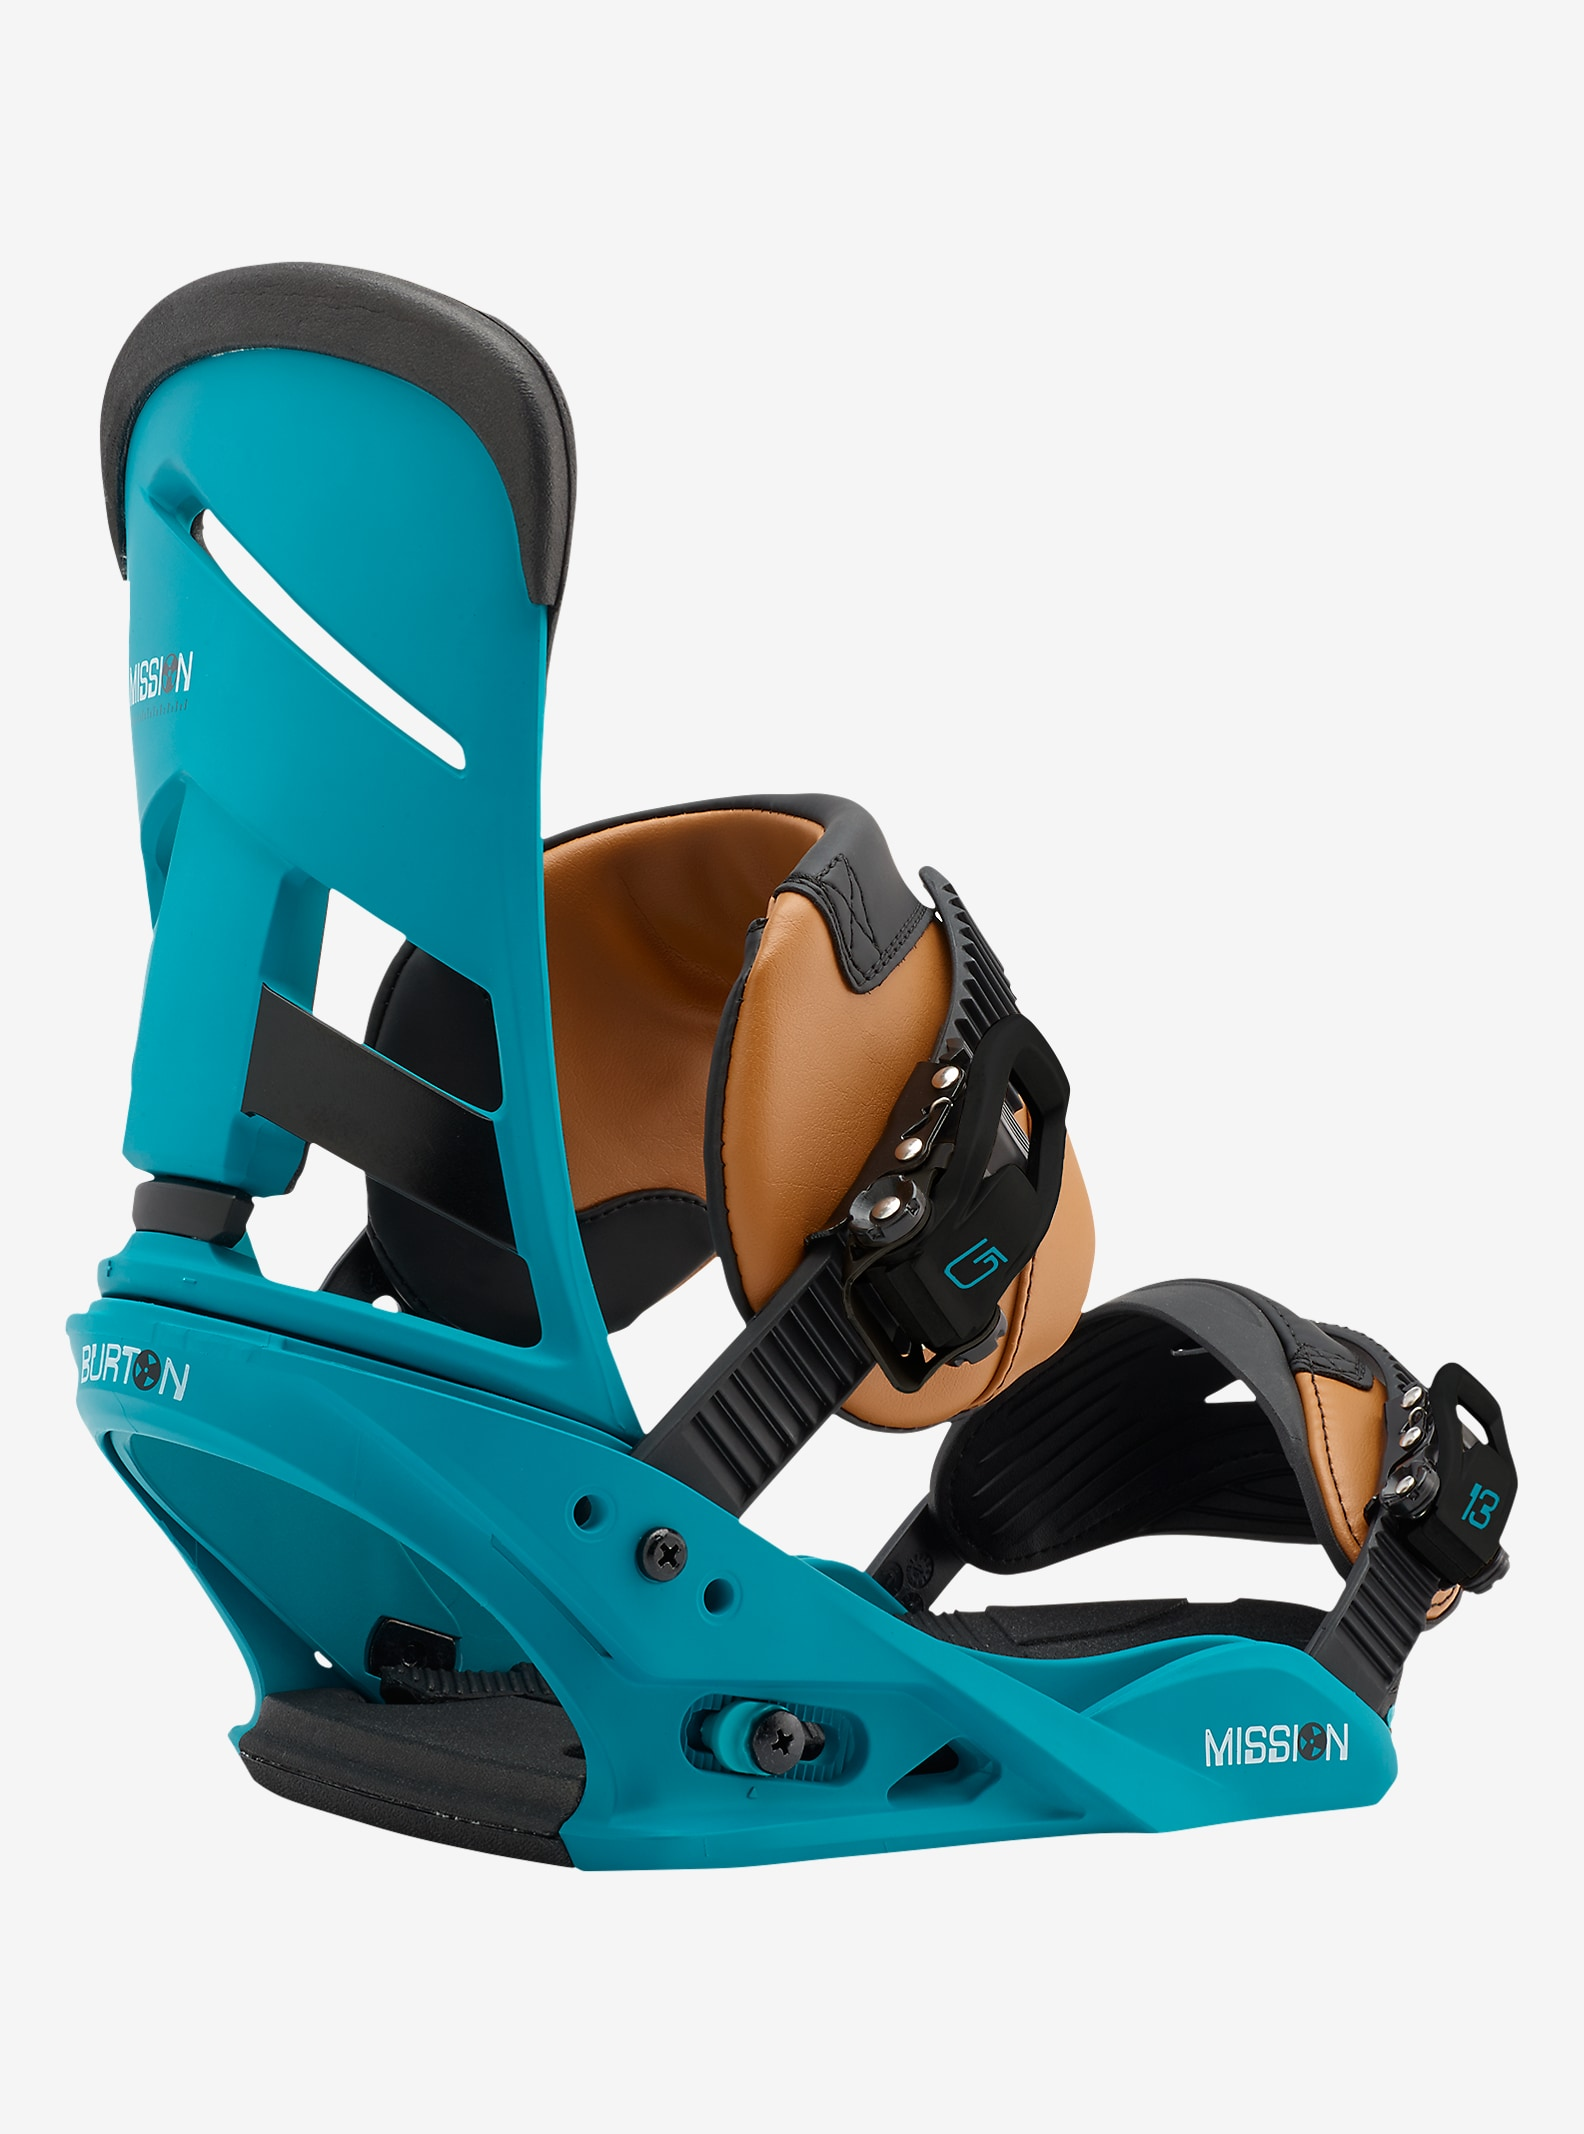 Burton Mission Snowboard Binding shown in Real Recognize Teal